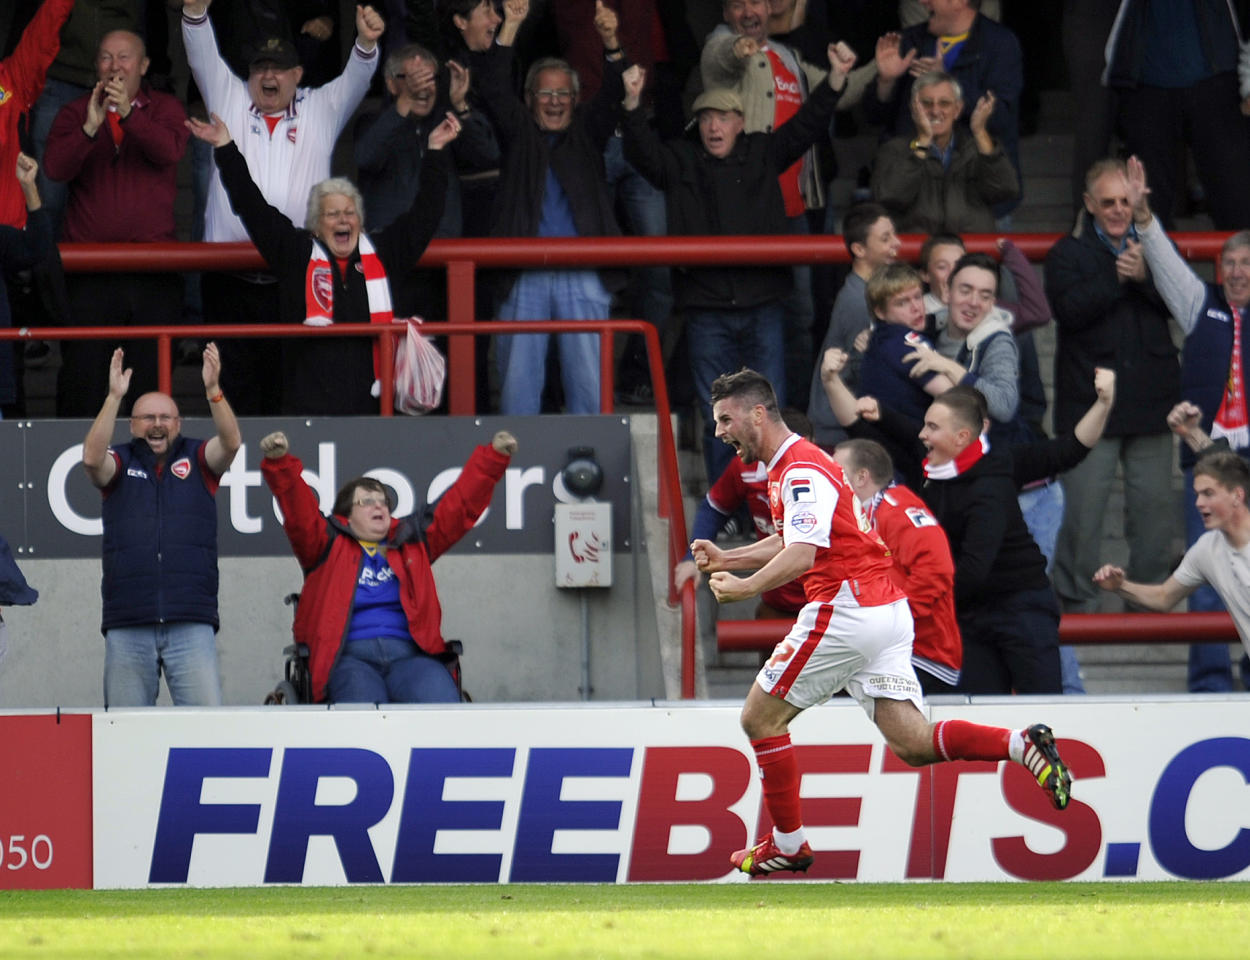 Morecambe's Padraig Amond celebrates after he scores the fourth goal of the game for his side during the Sky Bet League Two match at Globe Arena, Morecambe.